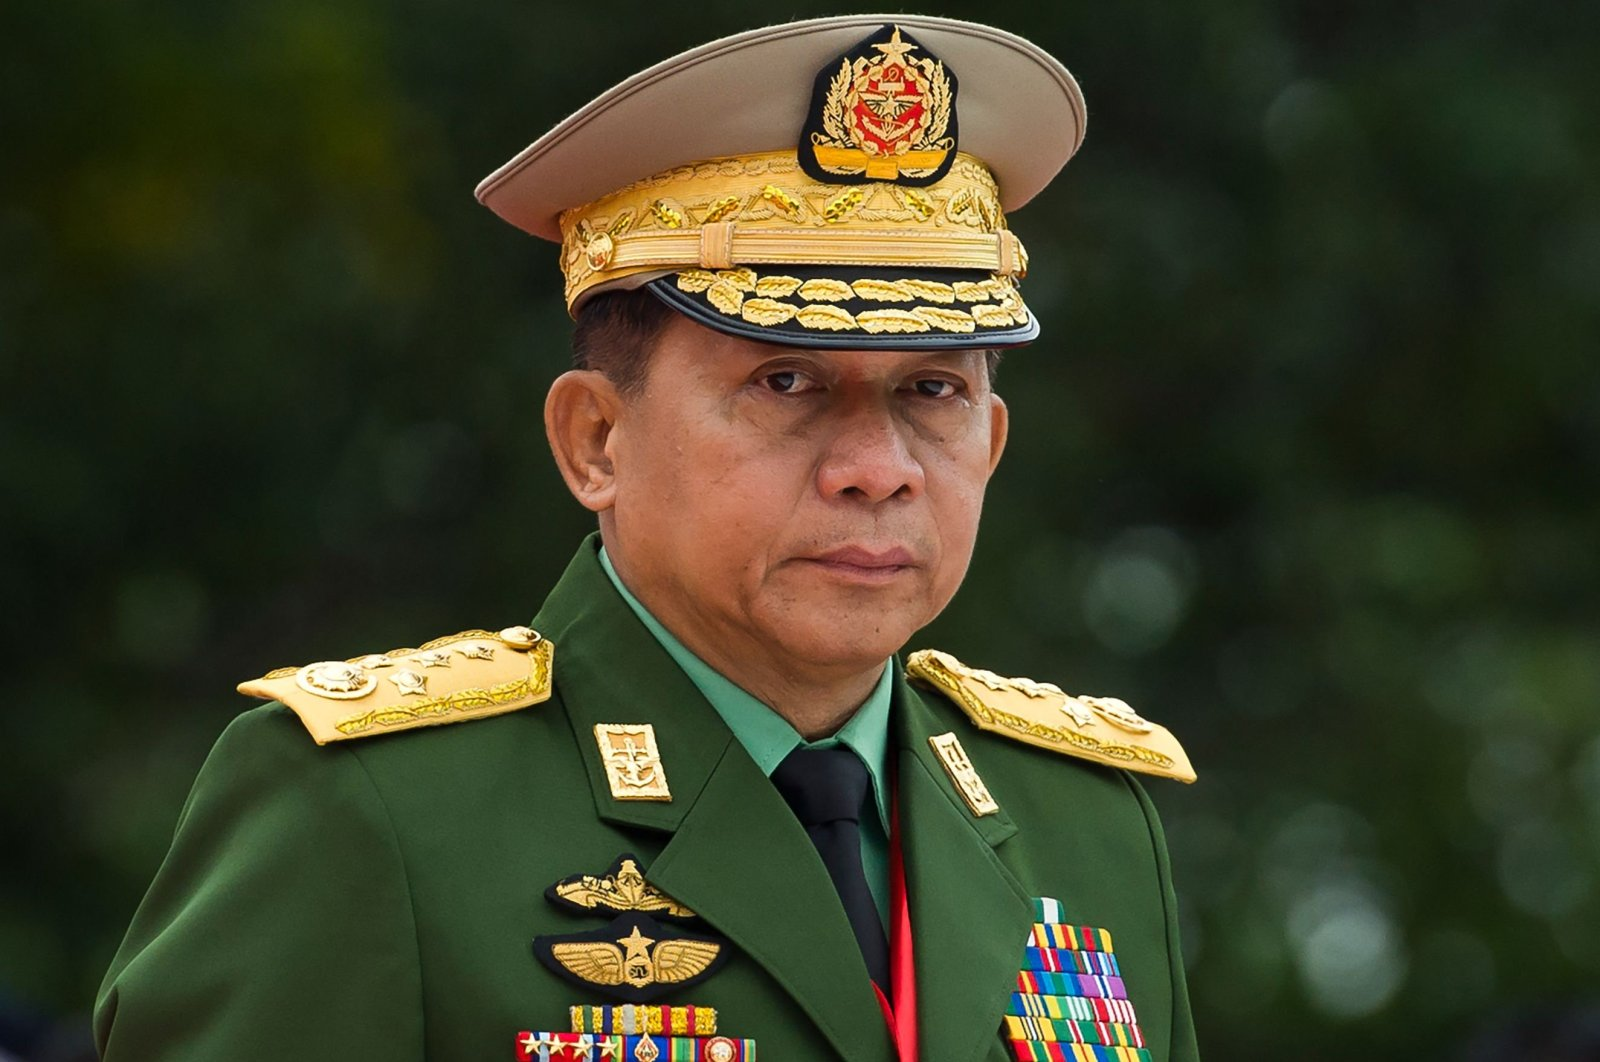 Myanmar's Chief Senior General Min Aung Hlaing, commander-in-chief of the Myanmar armed forces, arrives at a ceremony to mark the 71st anniversary of Martyrs' Day in Yangon, Myanmar, July 19, 2018. (AFP Photo)